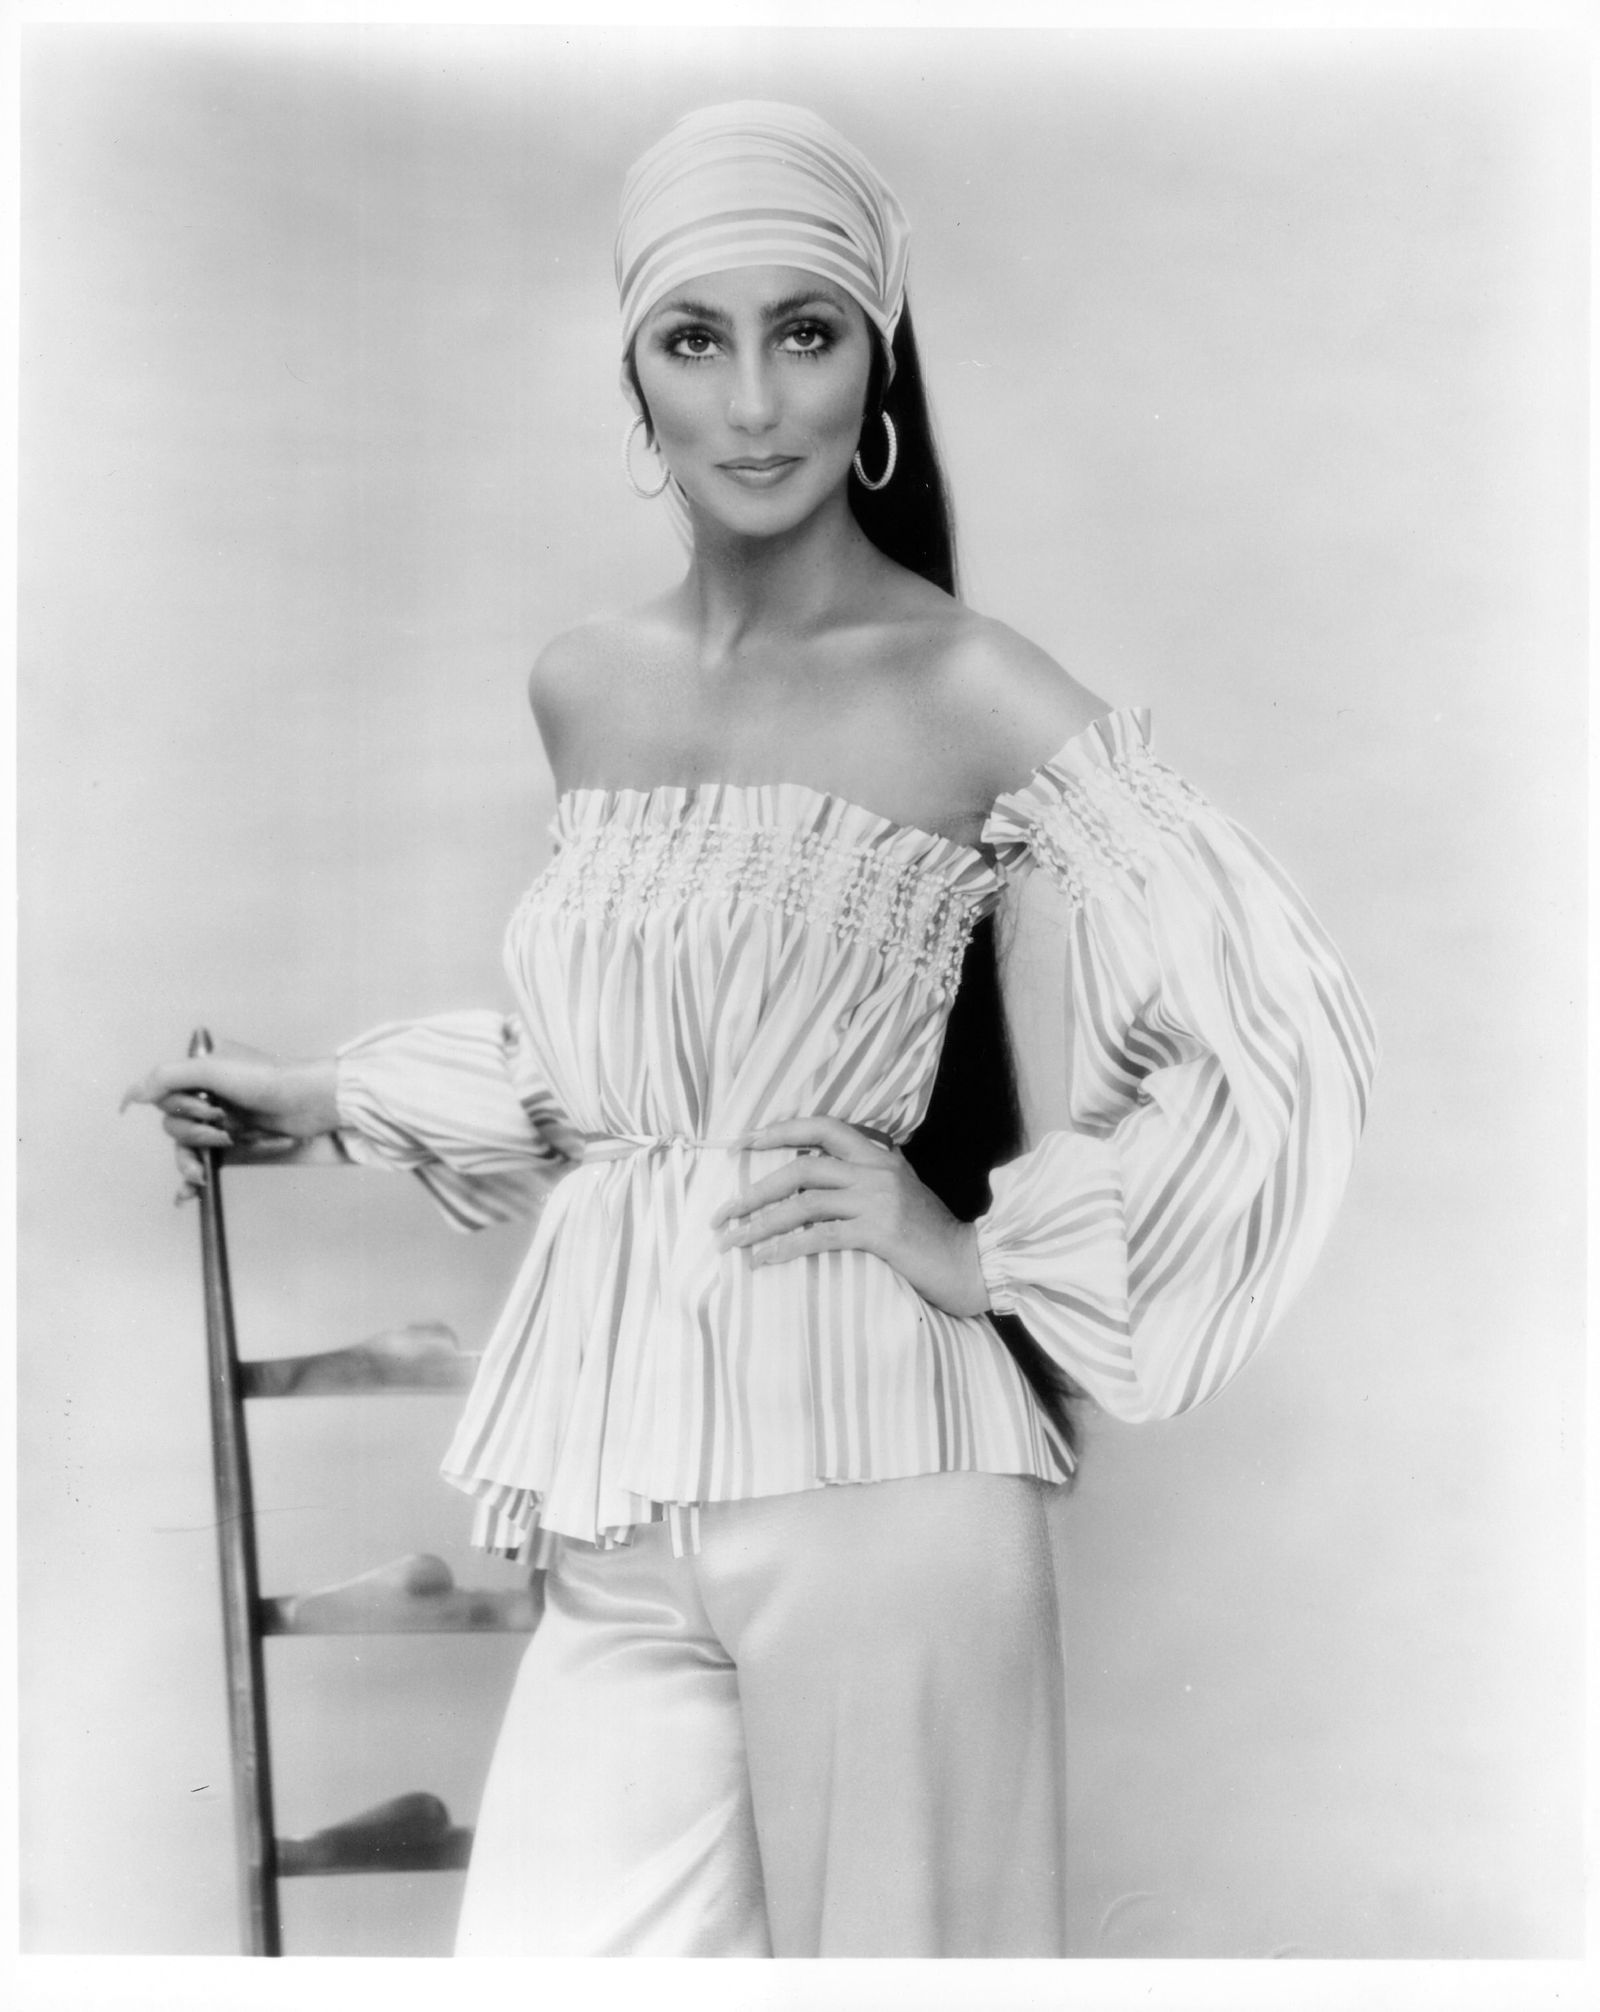 Cher's Most Iconic Fashion Moments Over the Last 6 Decades